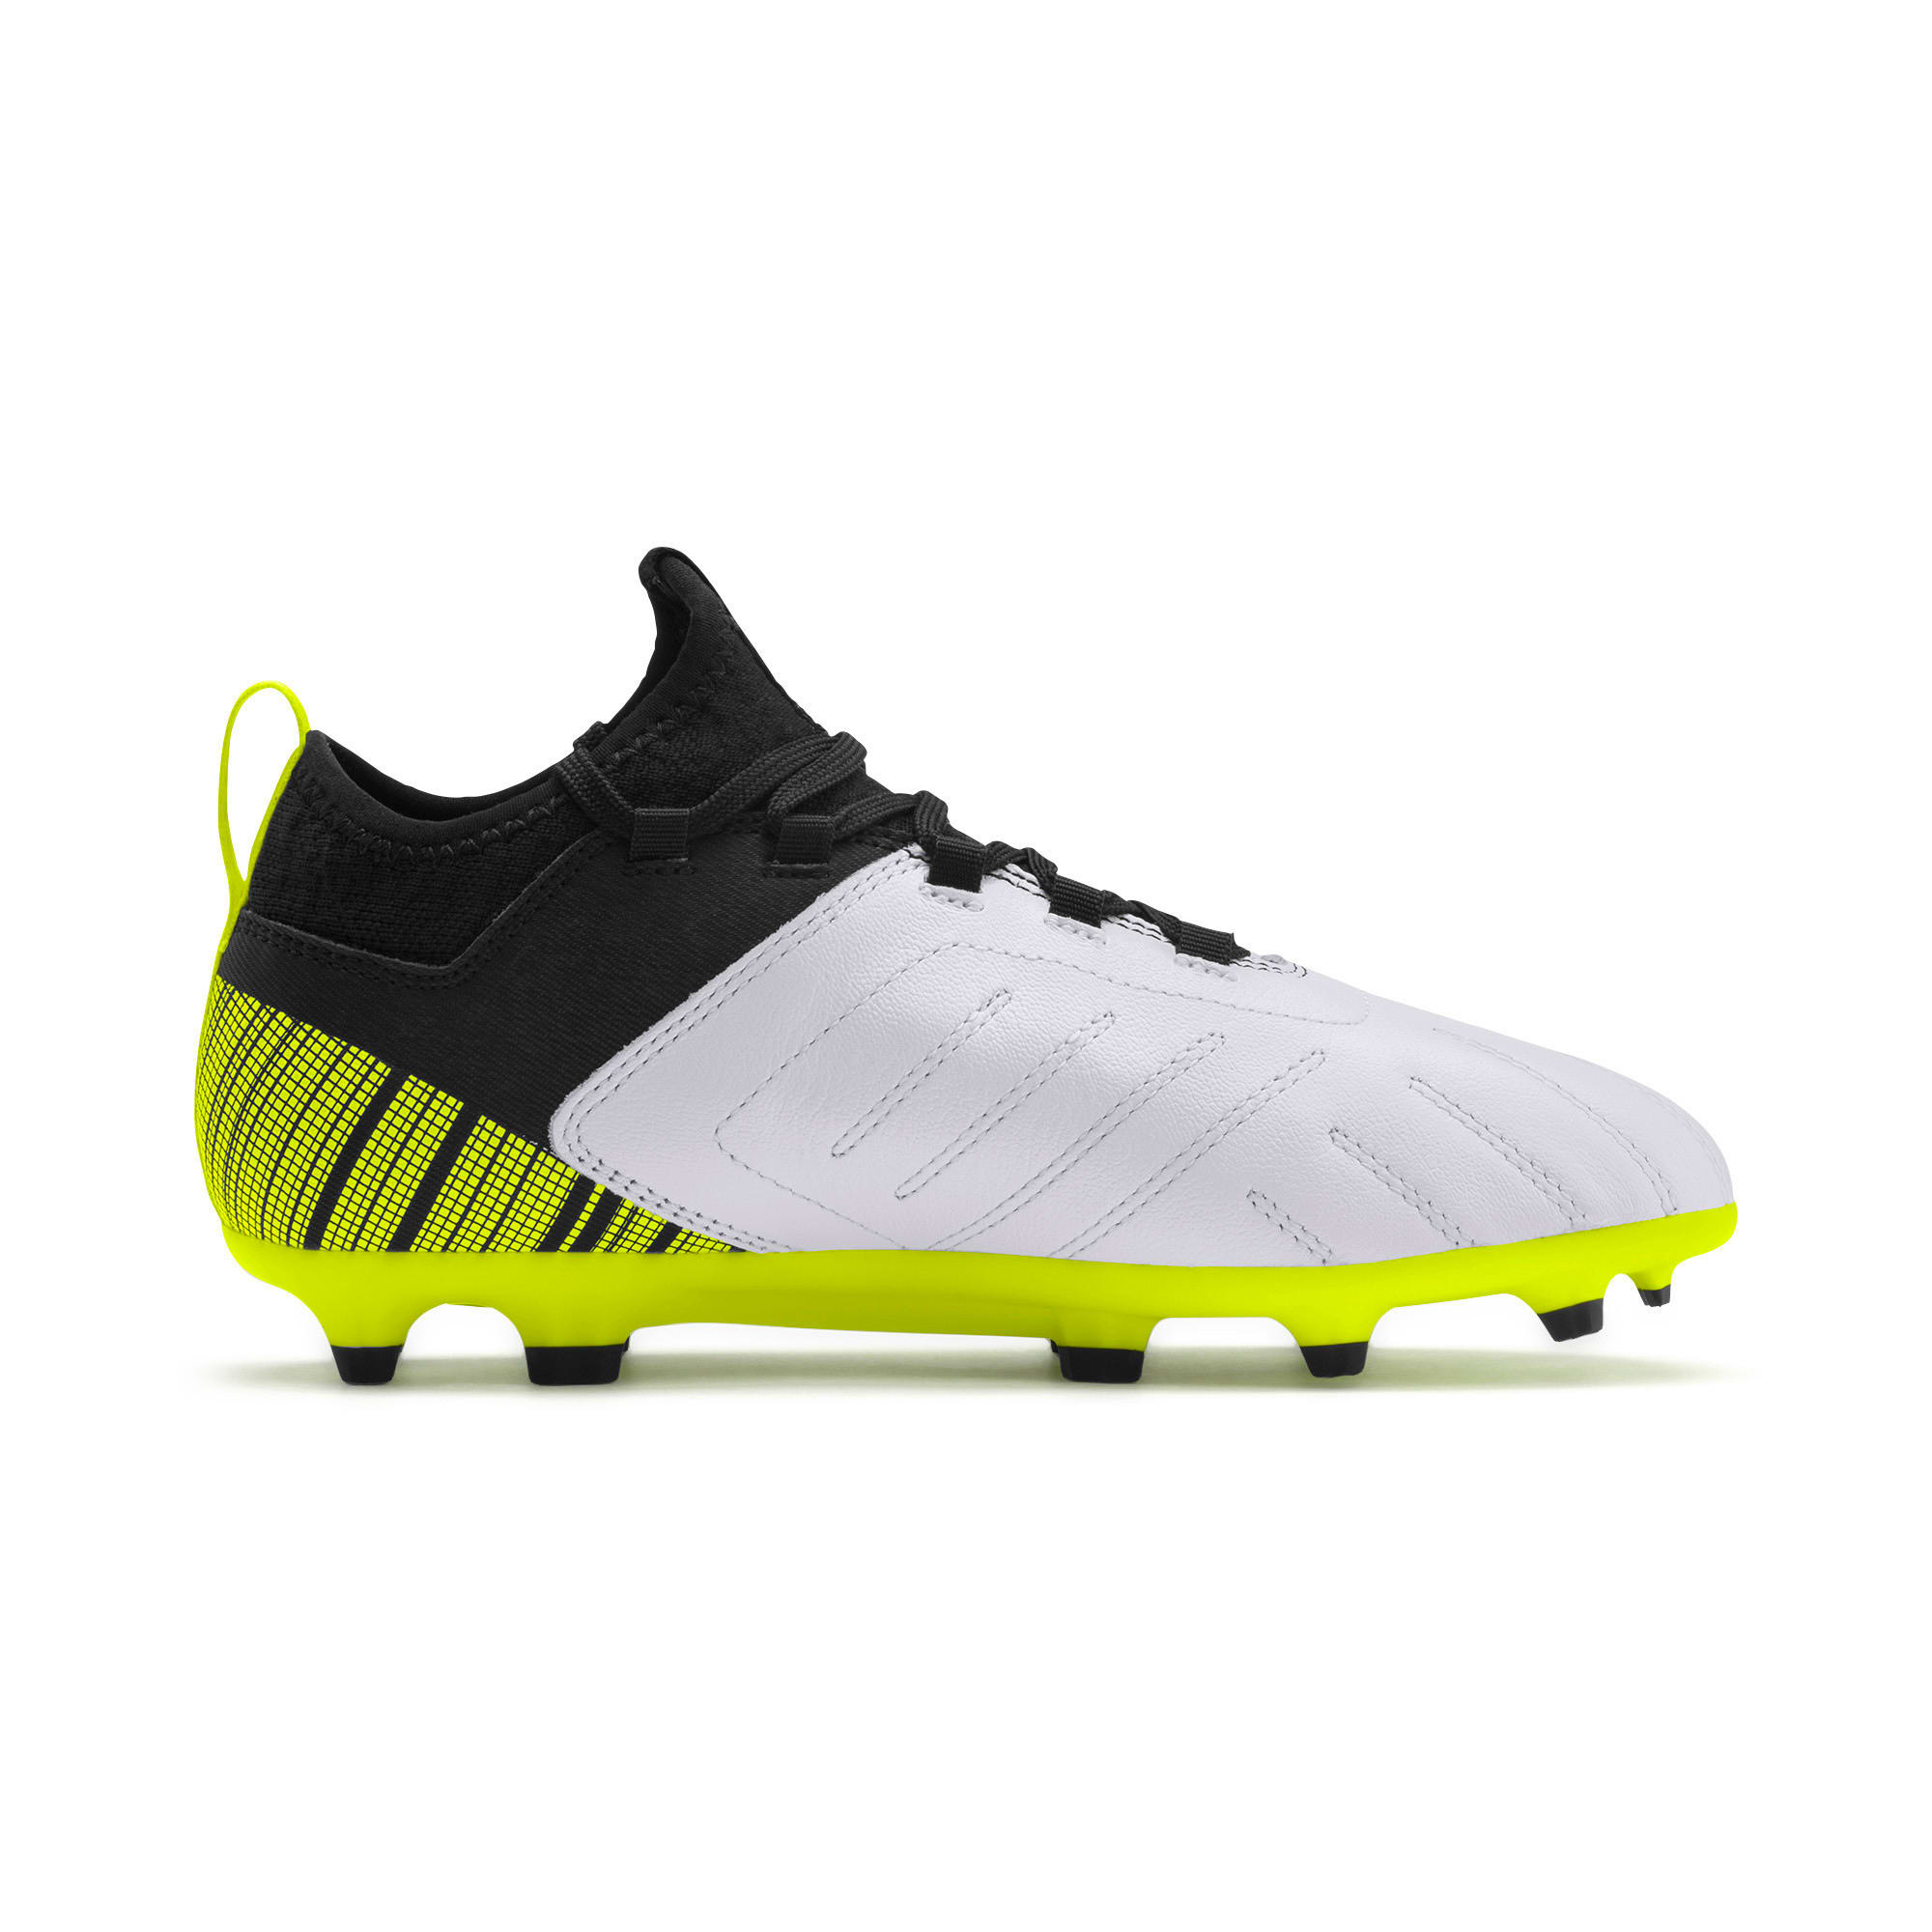 Thumbnail 5 of Chaussure de foot PUMA ONE 5.3 FG/AG Youth, White-Black-Yellow Alert, medium